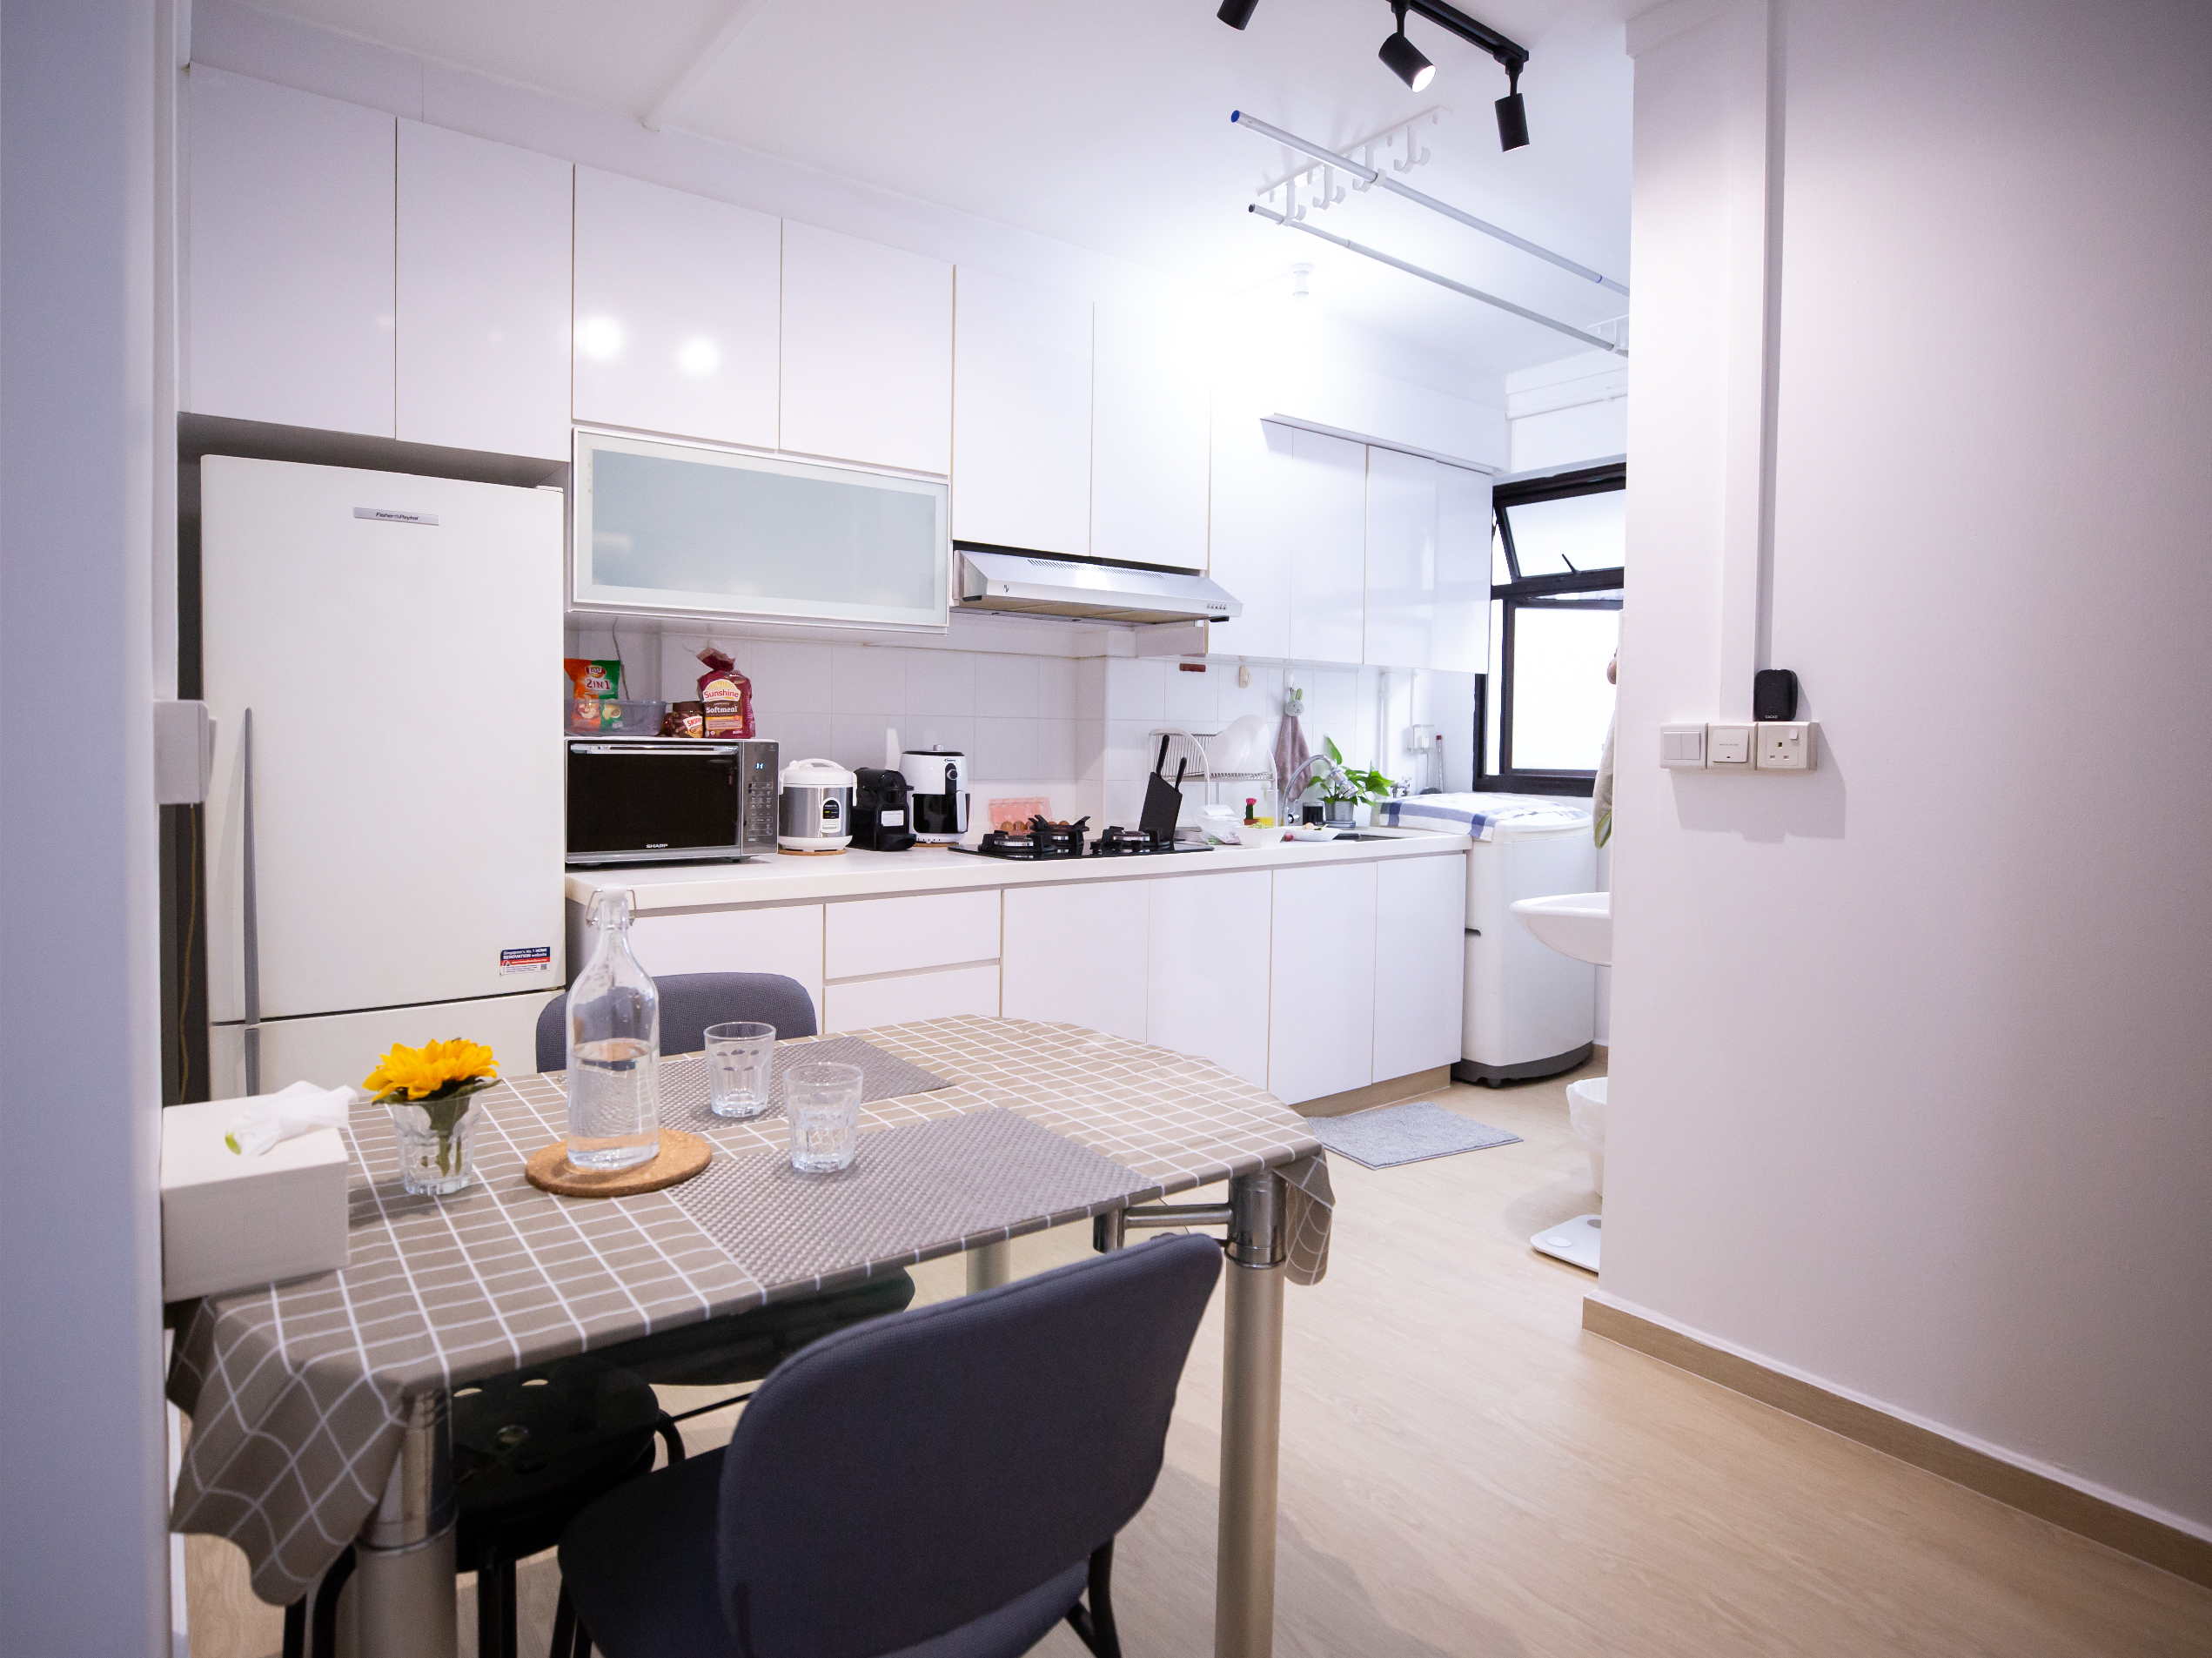 Kitchen and dining area of Derrick and Patricia's HDB resale flat in Yishun